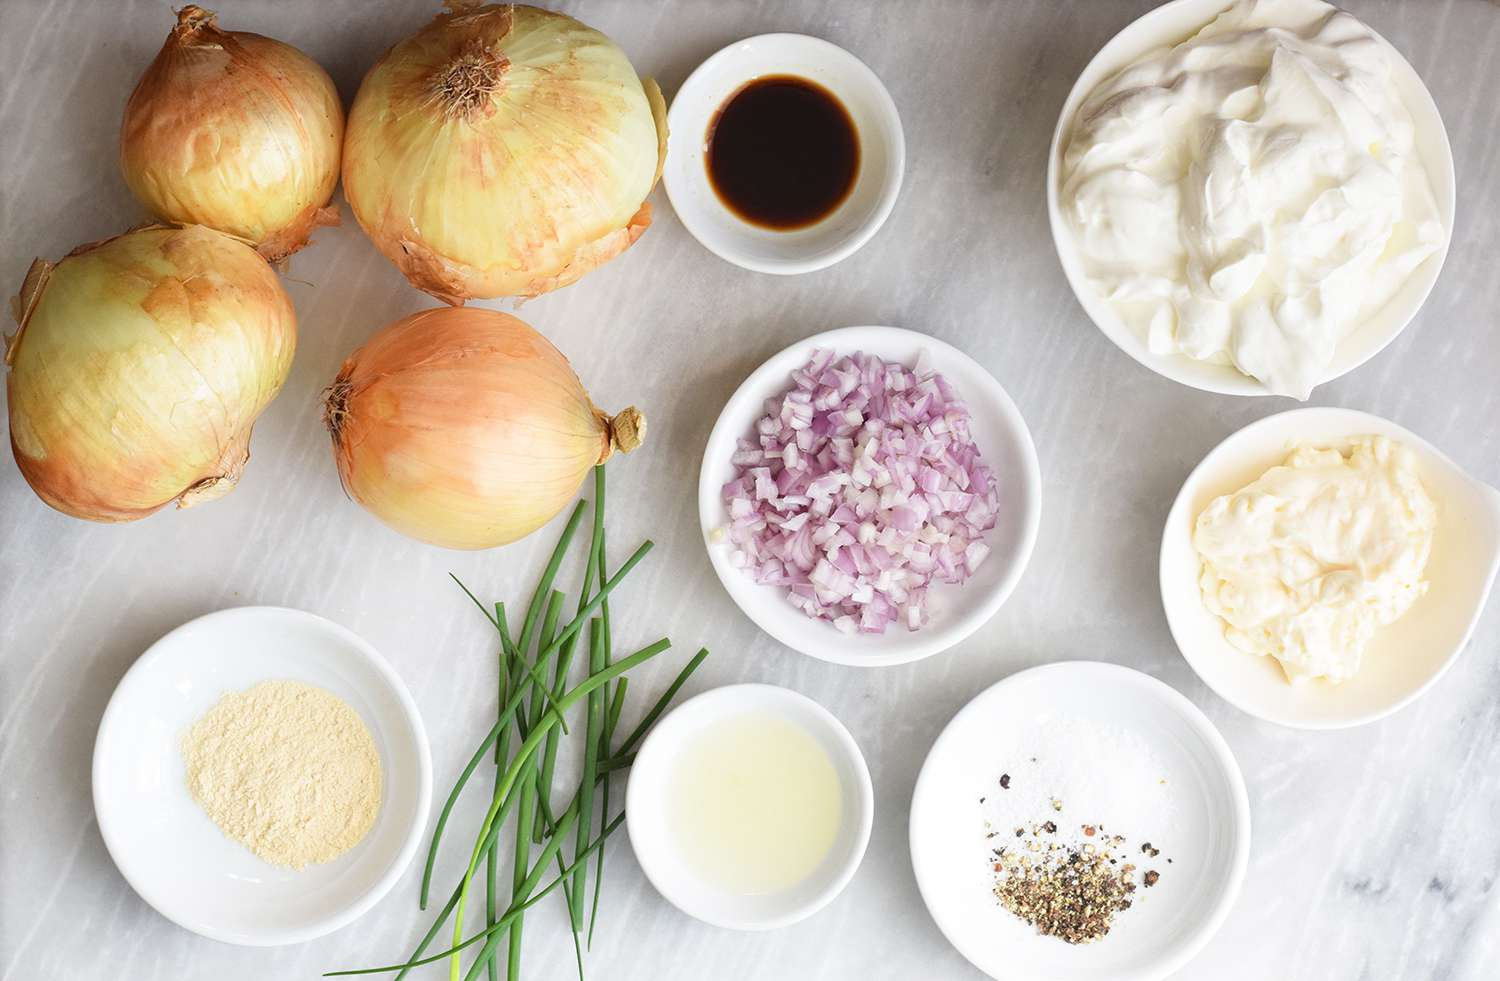 french-onion-dip-4771376-01